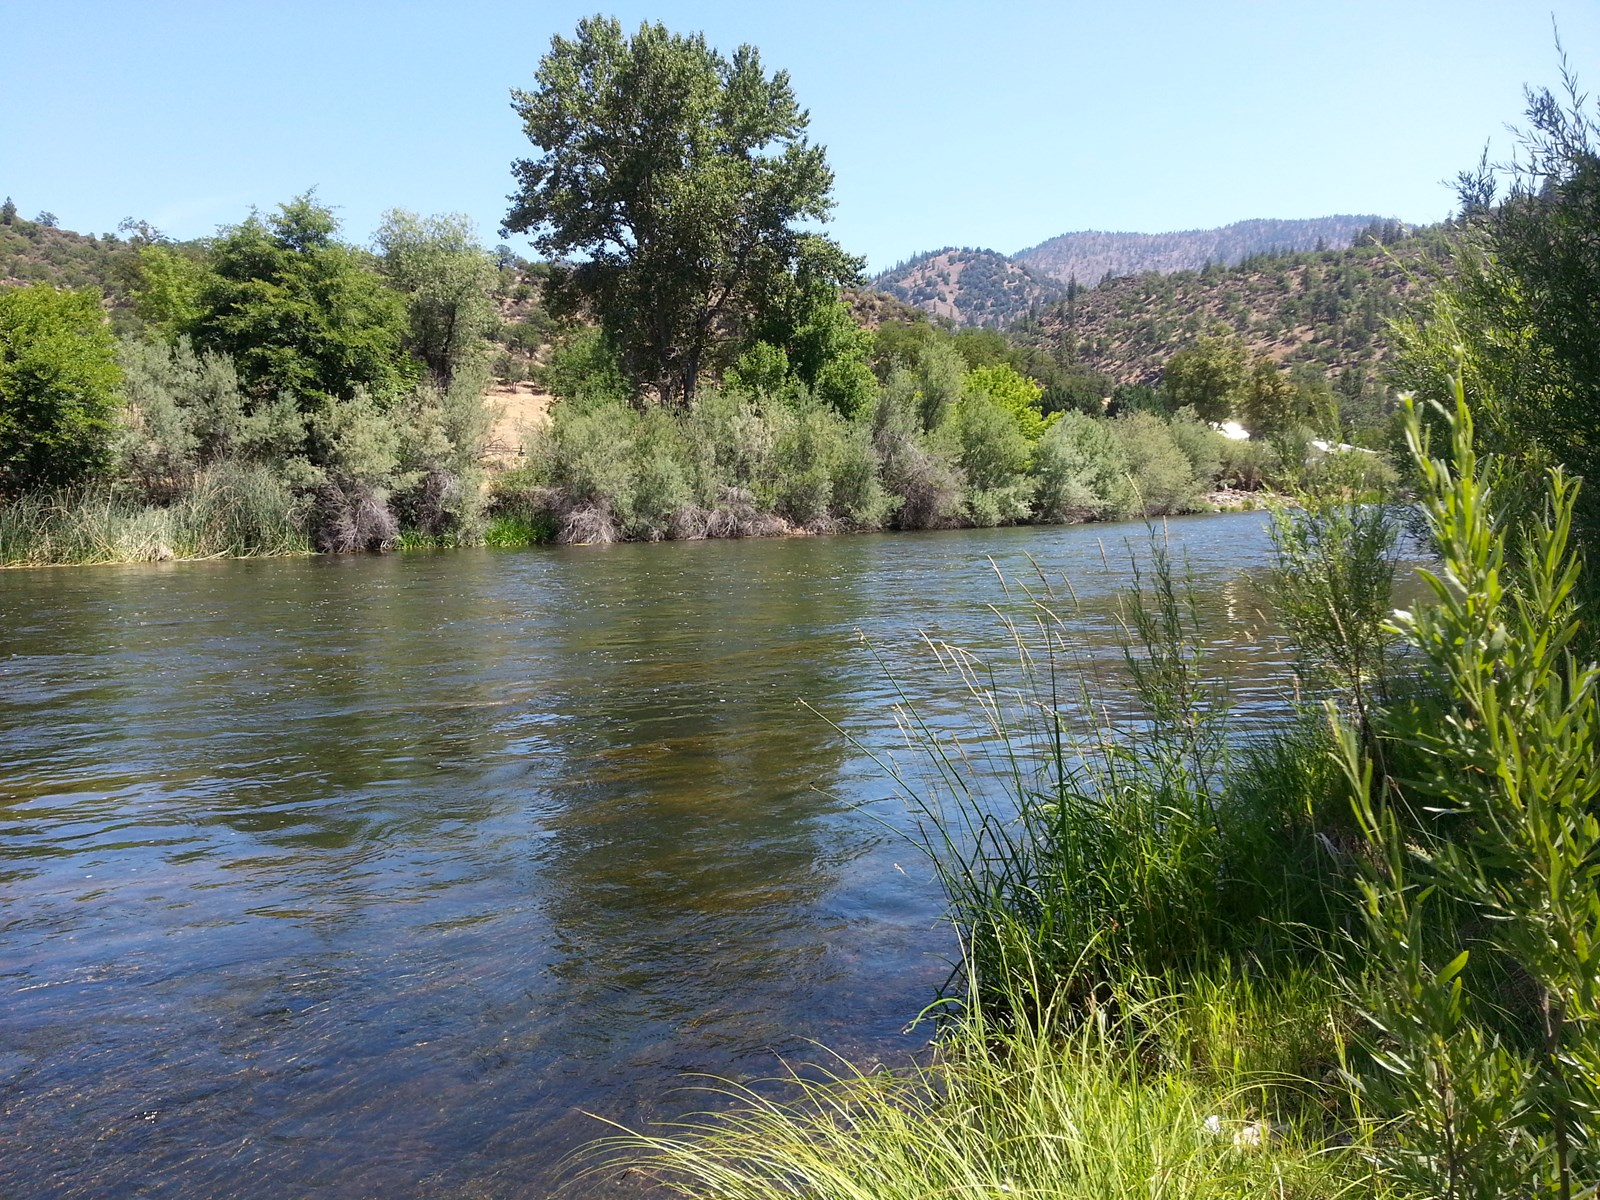 130 Acres for Sale on Klamath River in Siskiyou County, CA